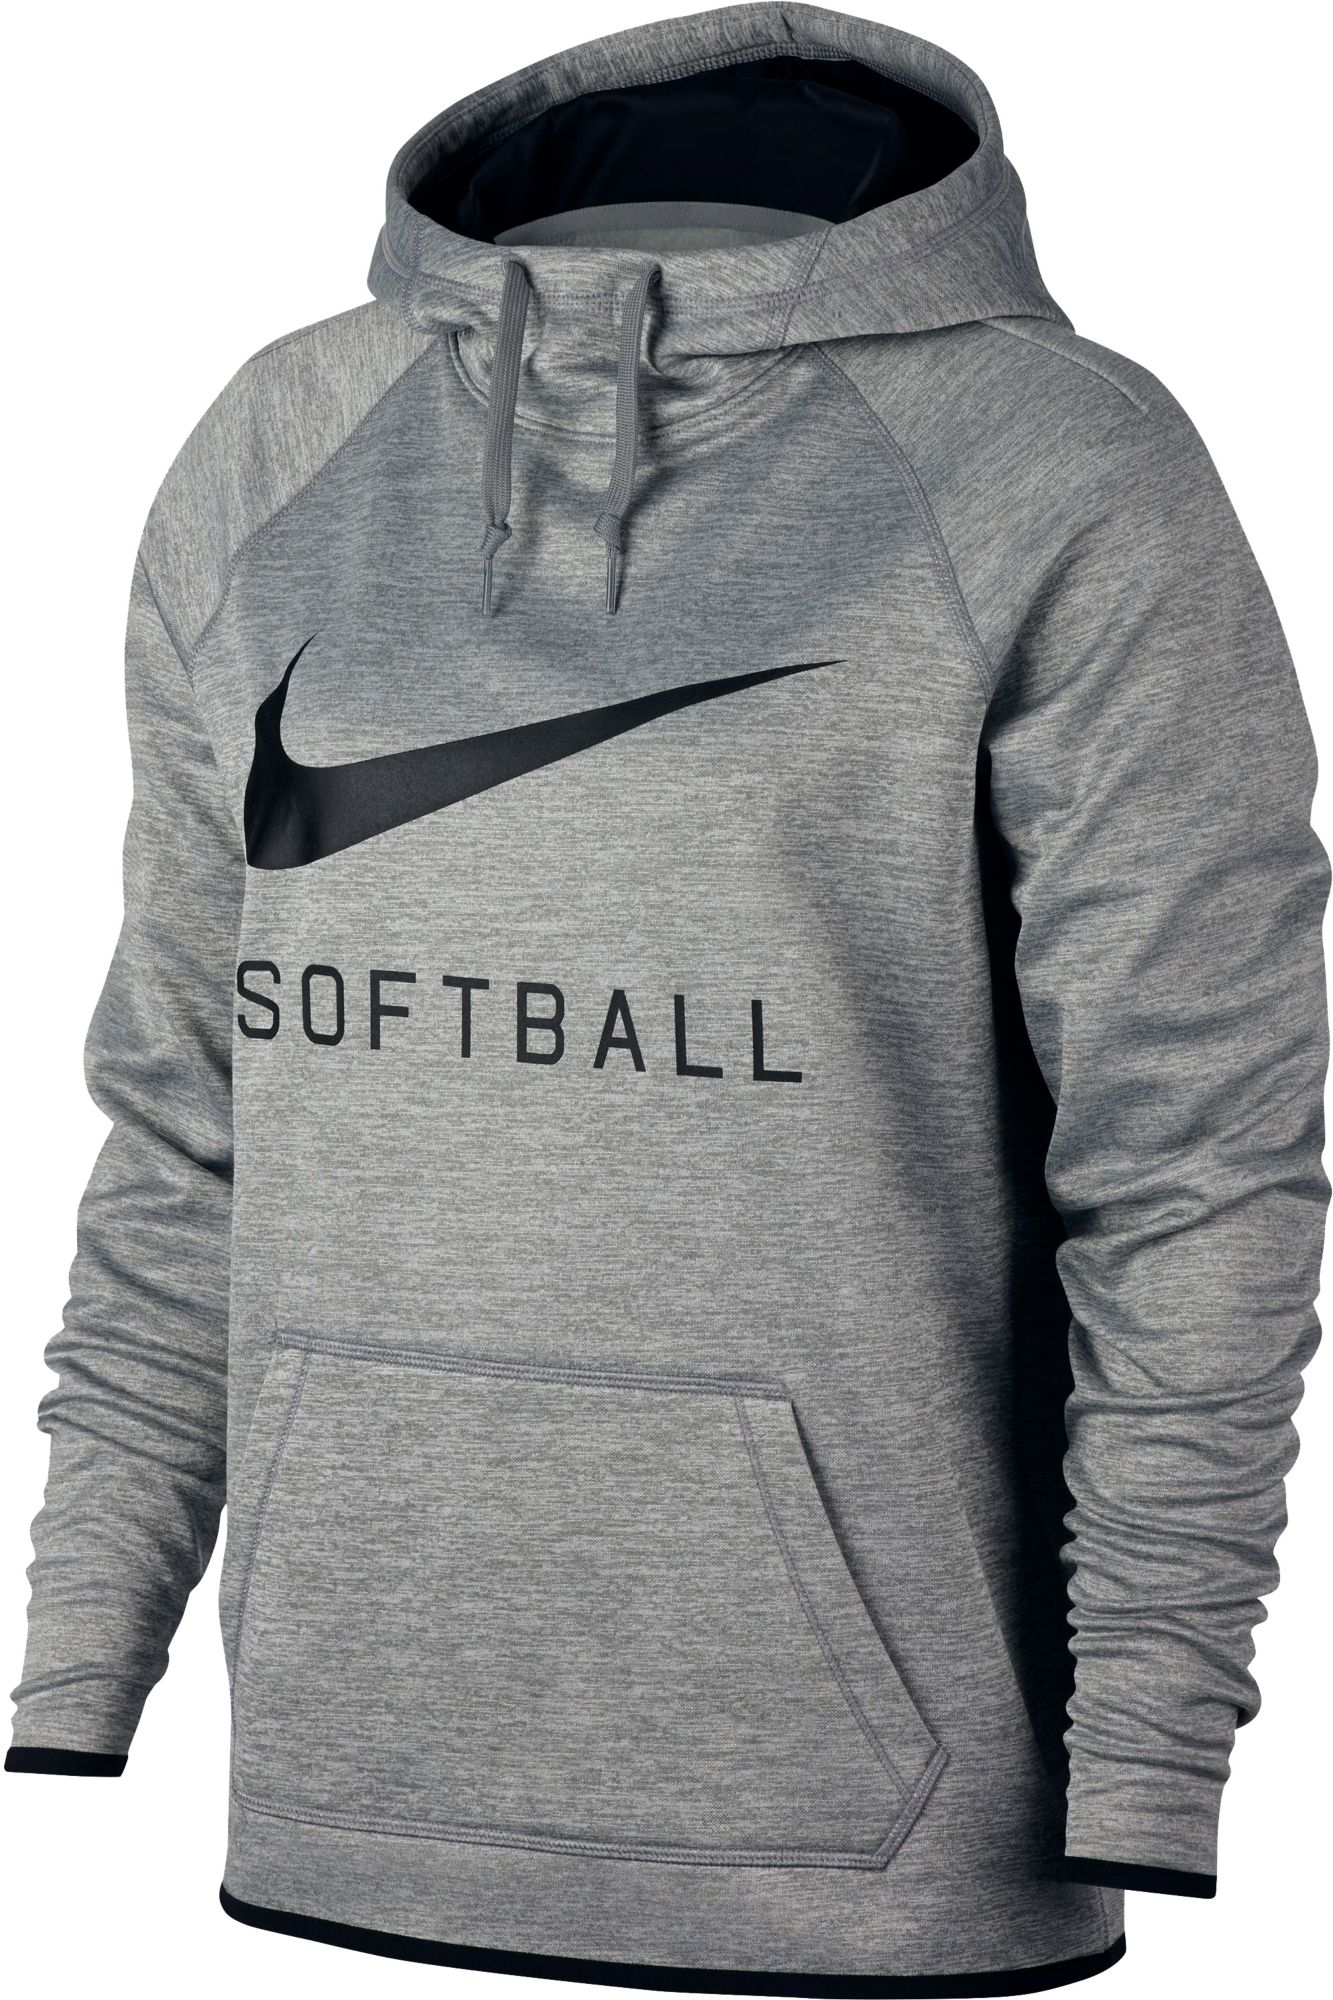 Nike Women's Softball Pullover Hoodie | DICK'S Sporting Goods